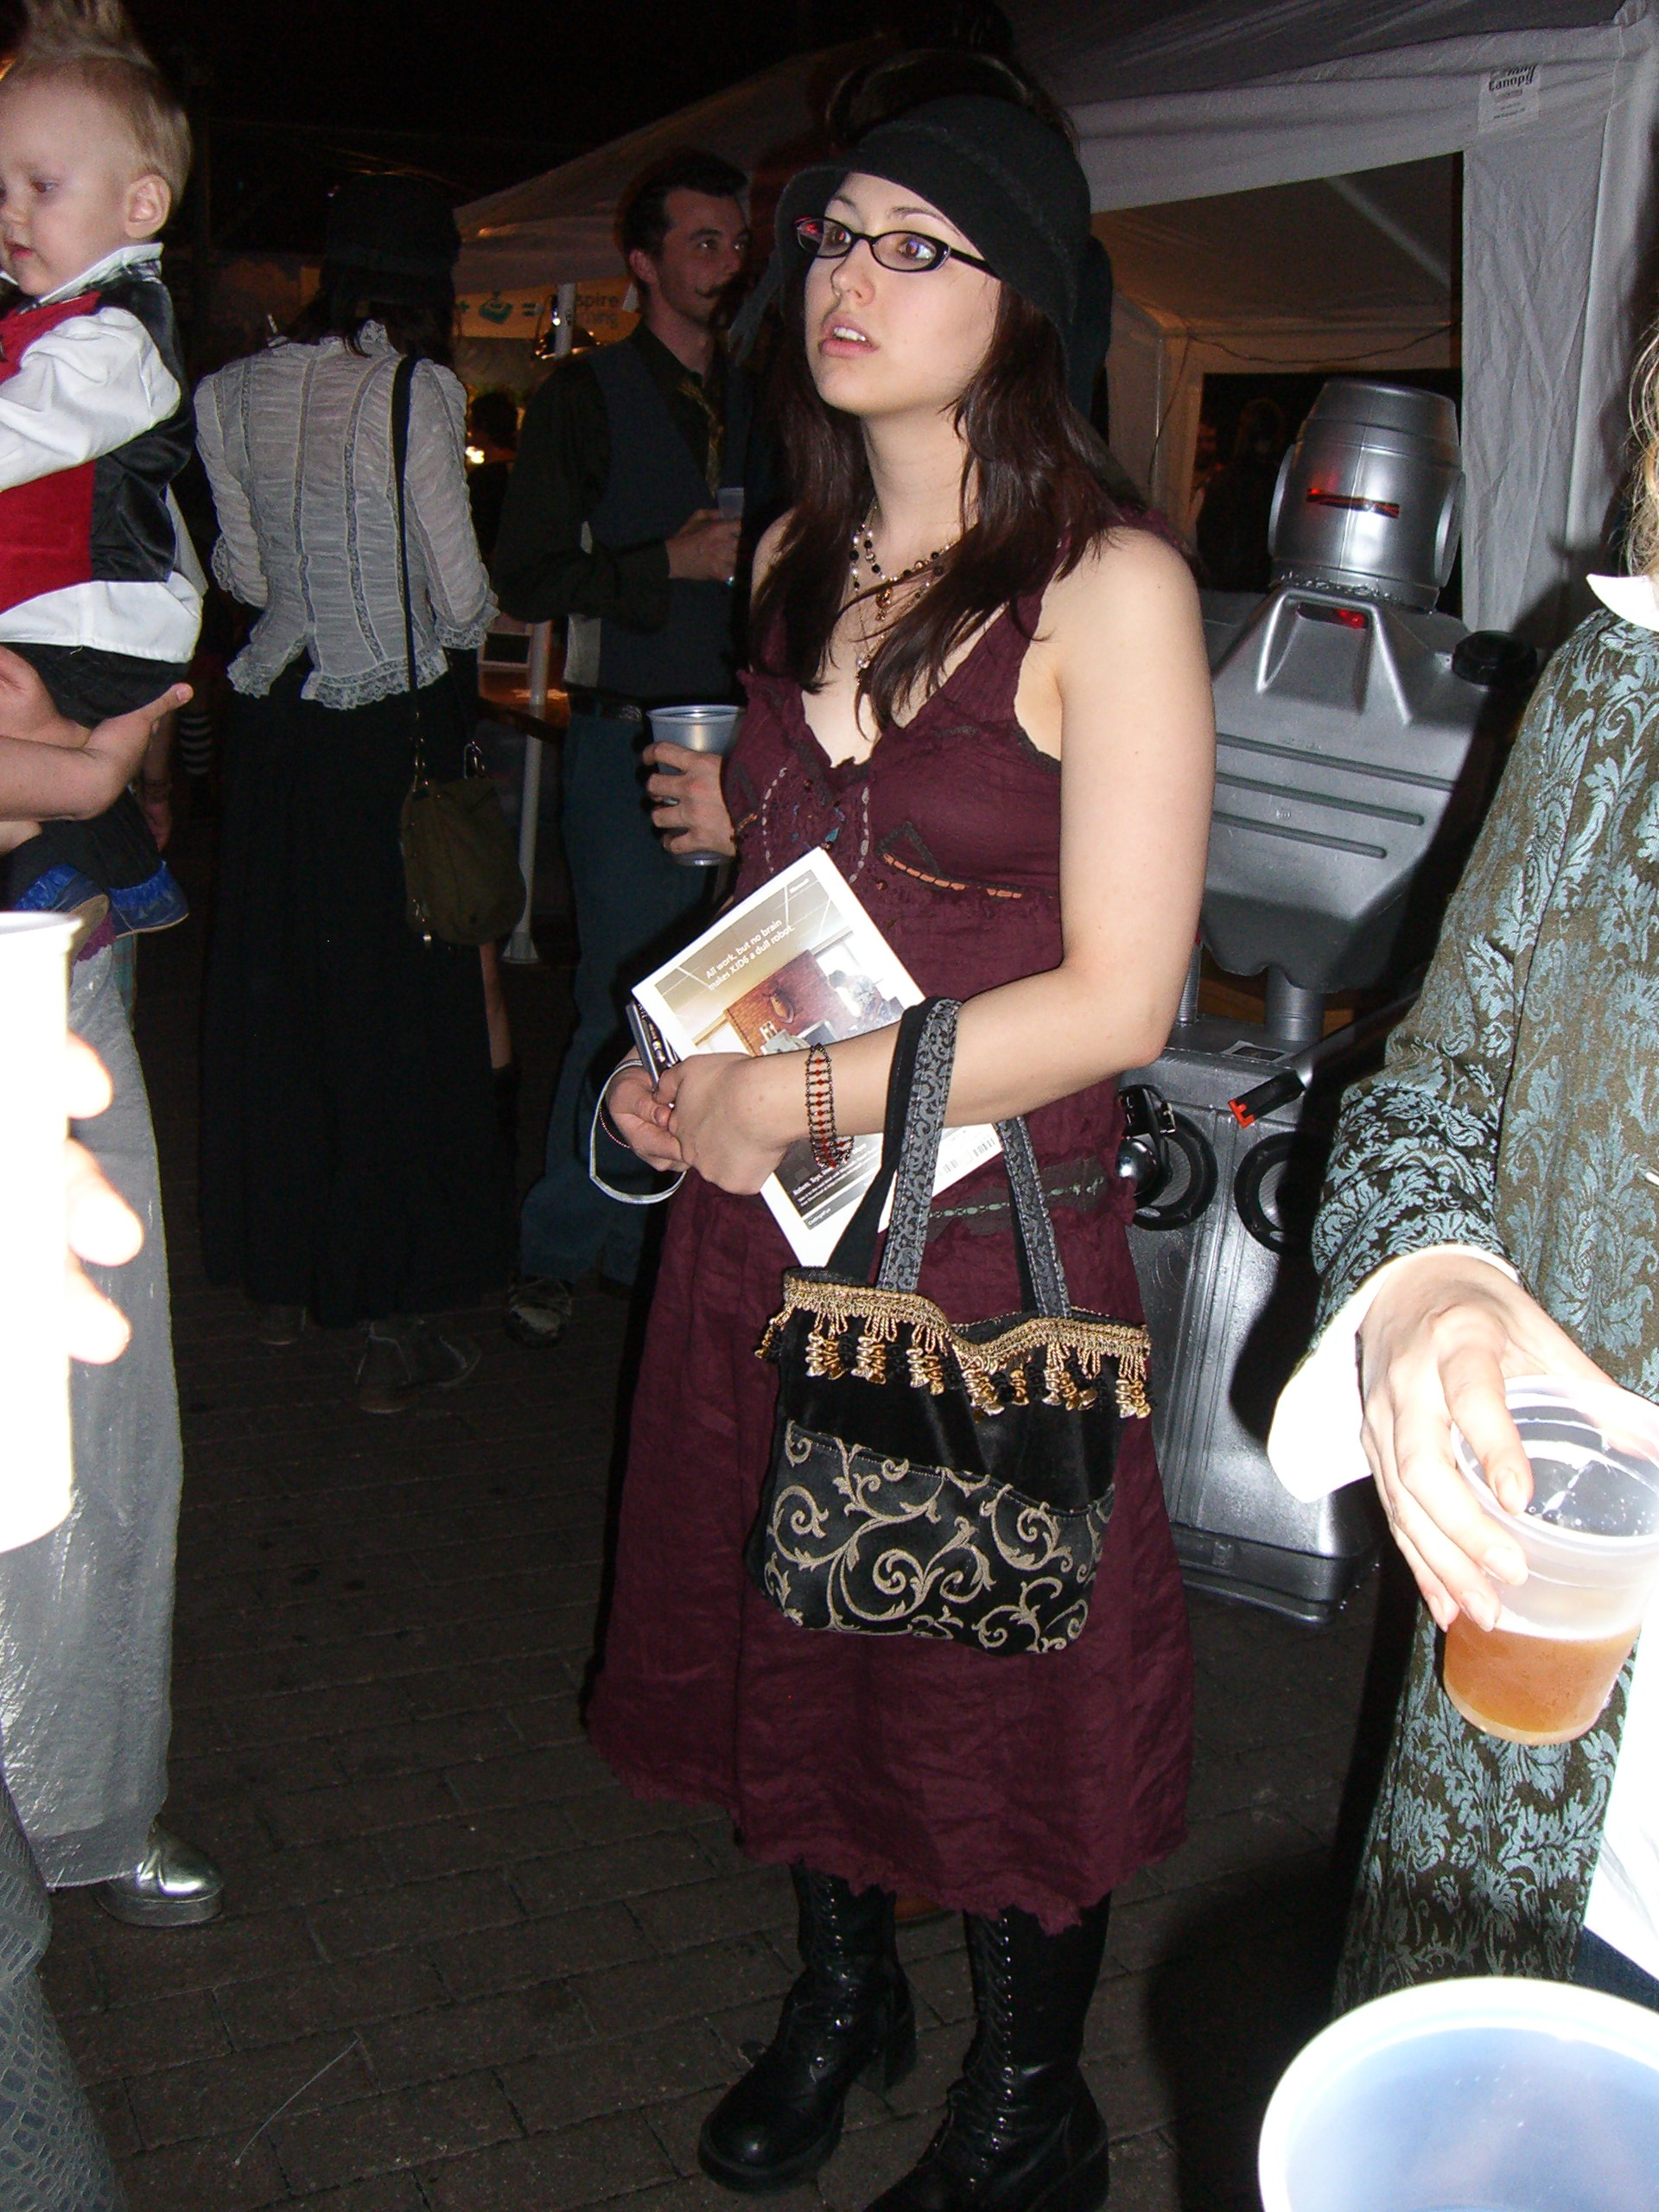 Purple dress and black hat at the steampunk party at SXSW 2007